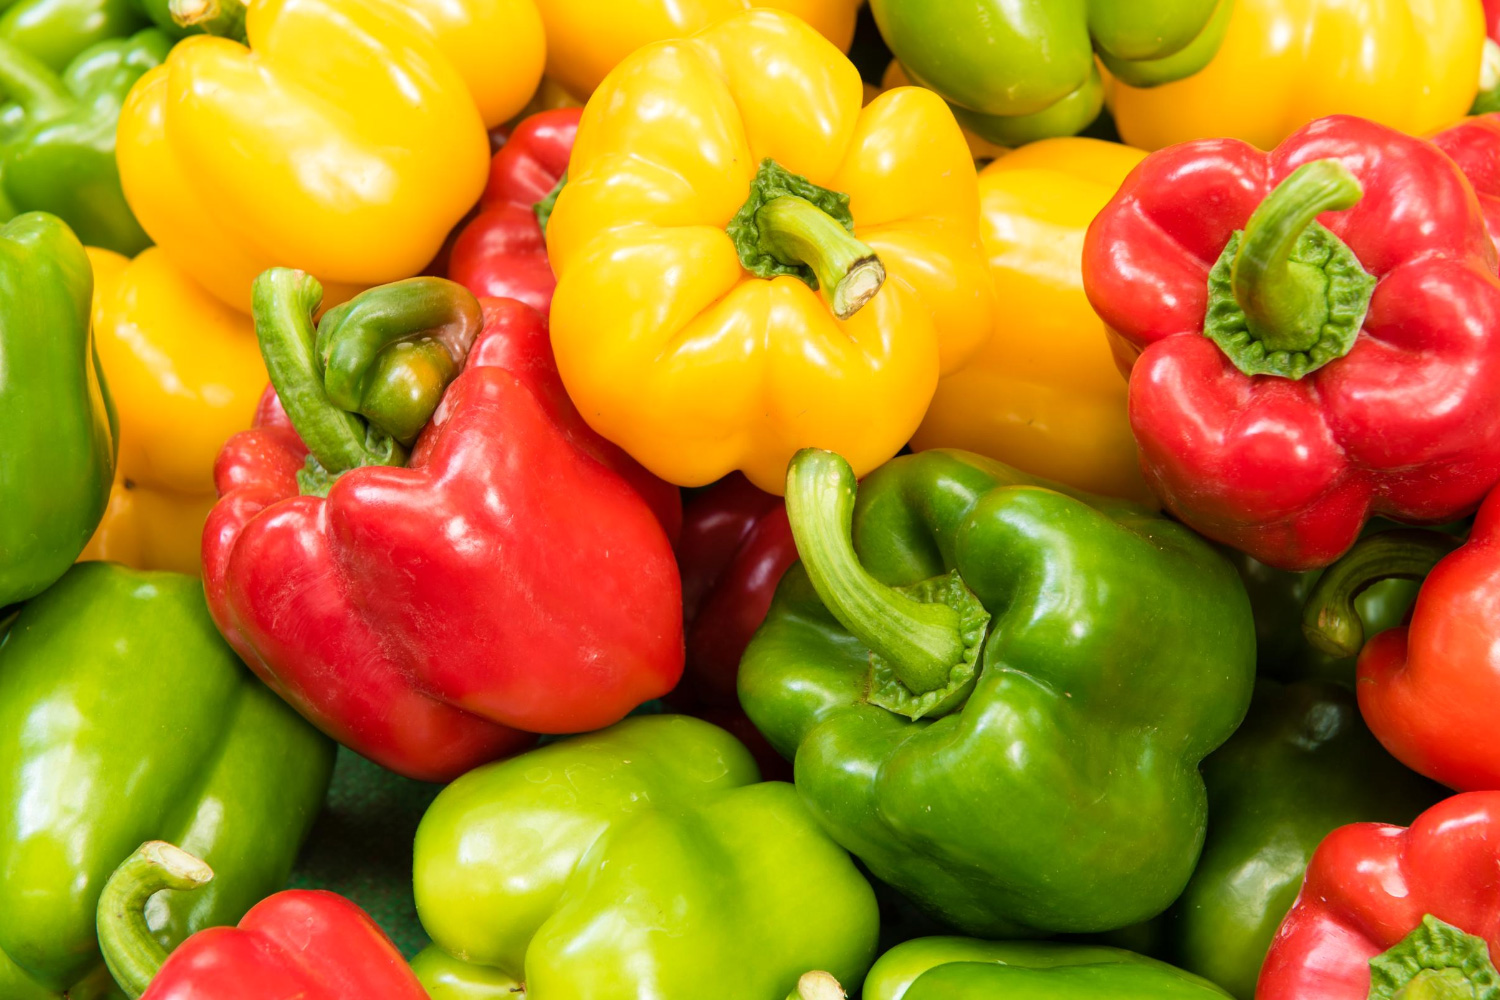 Crunchy, Sweet and Tasty Peppers